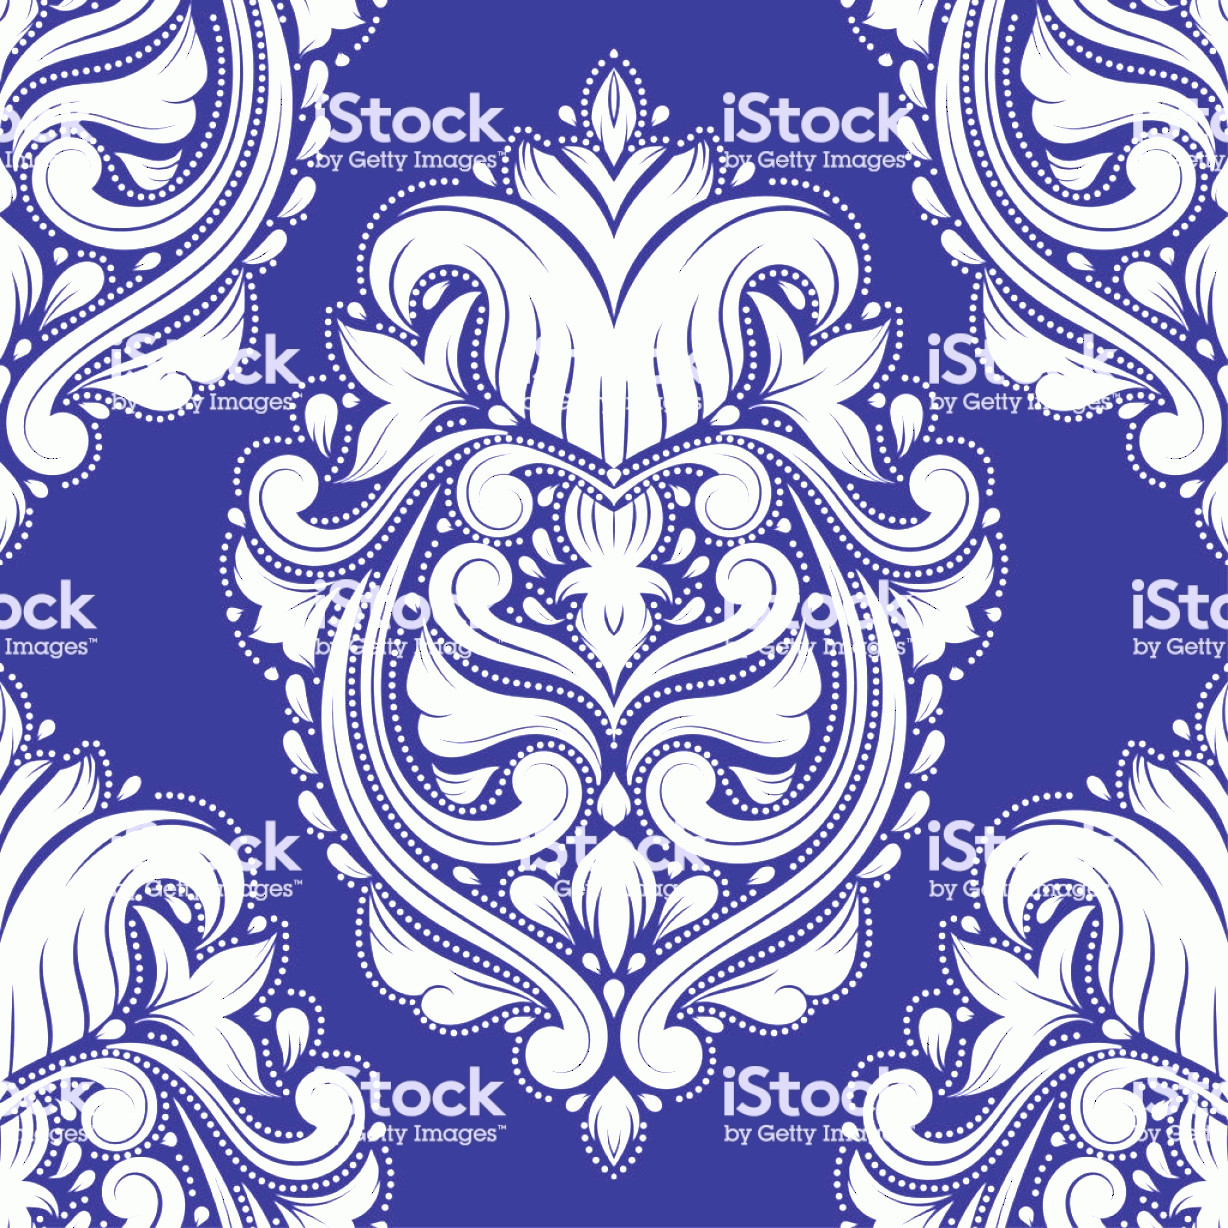 Blue And White Damask Vectors: Blue And White Damask Vector Seamless Pattern Wallpaper Elegant Classic Texture Gm